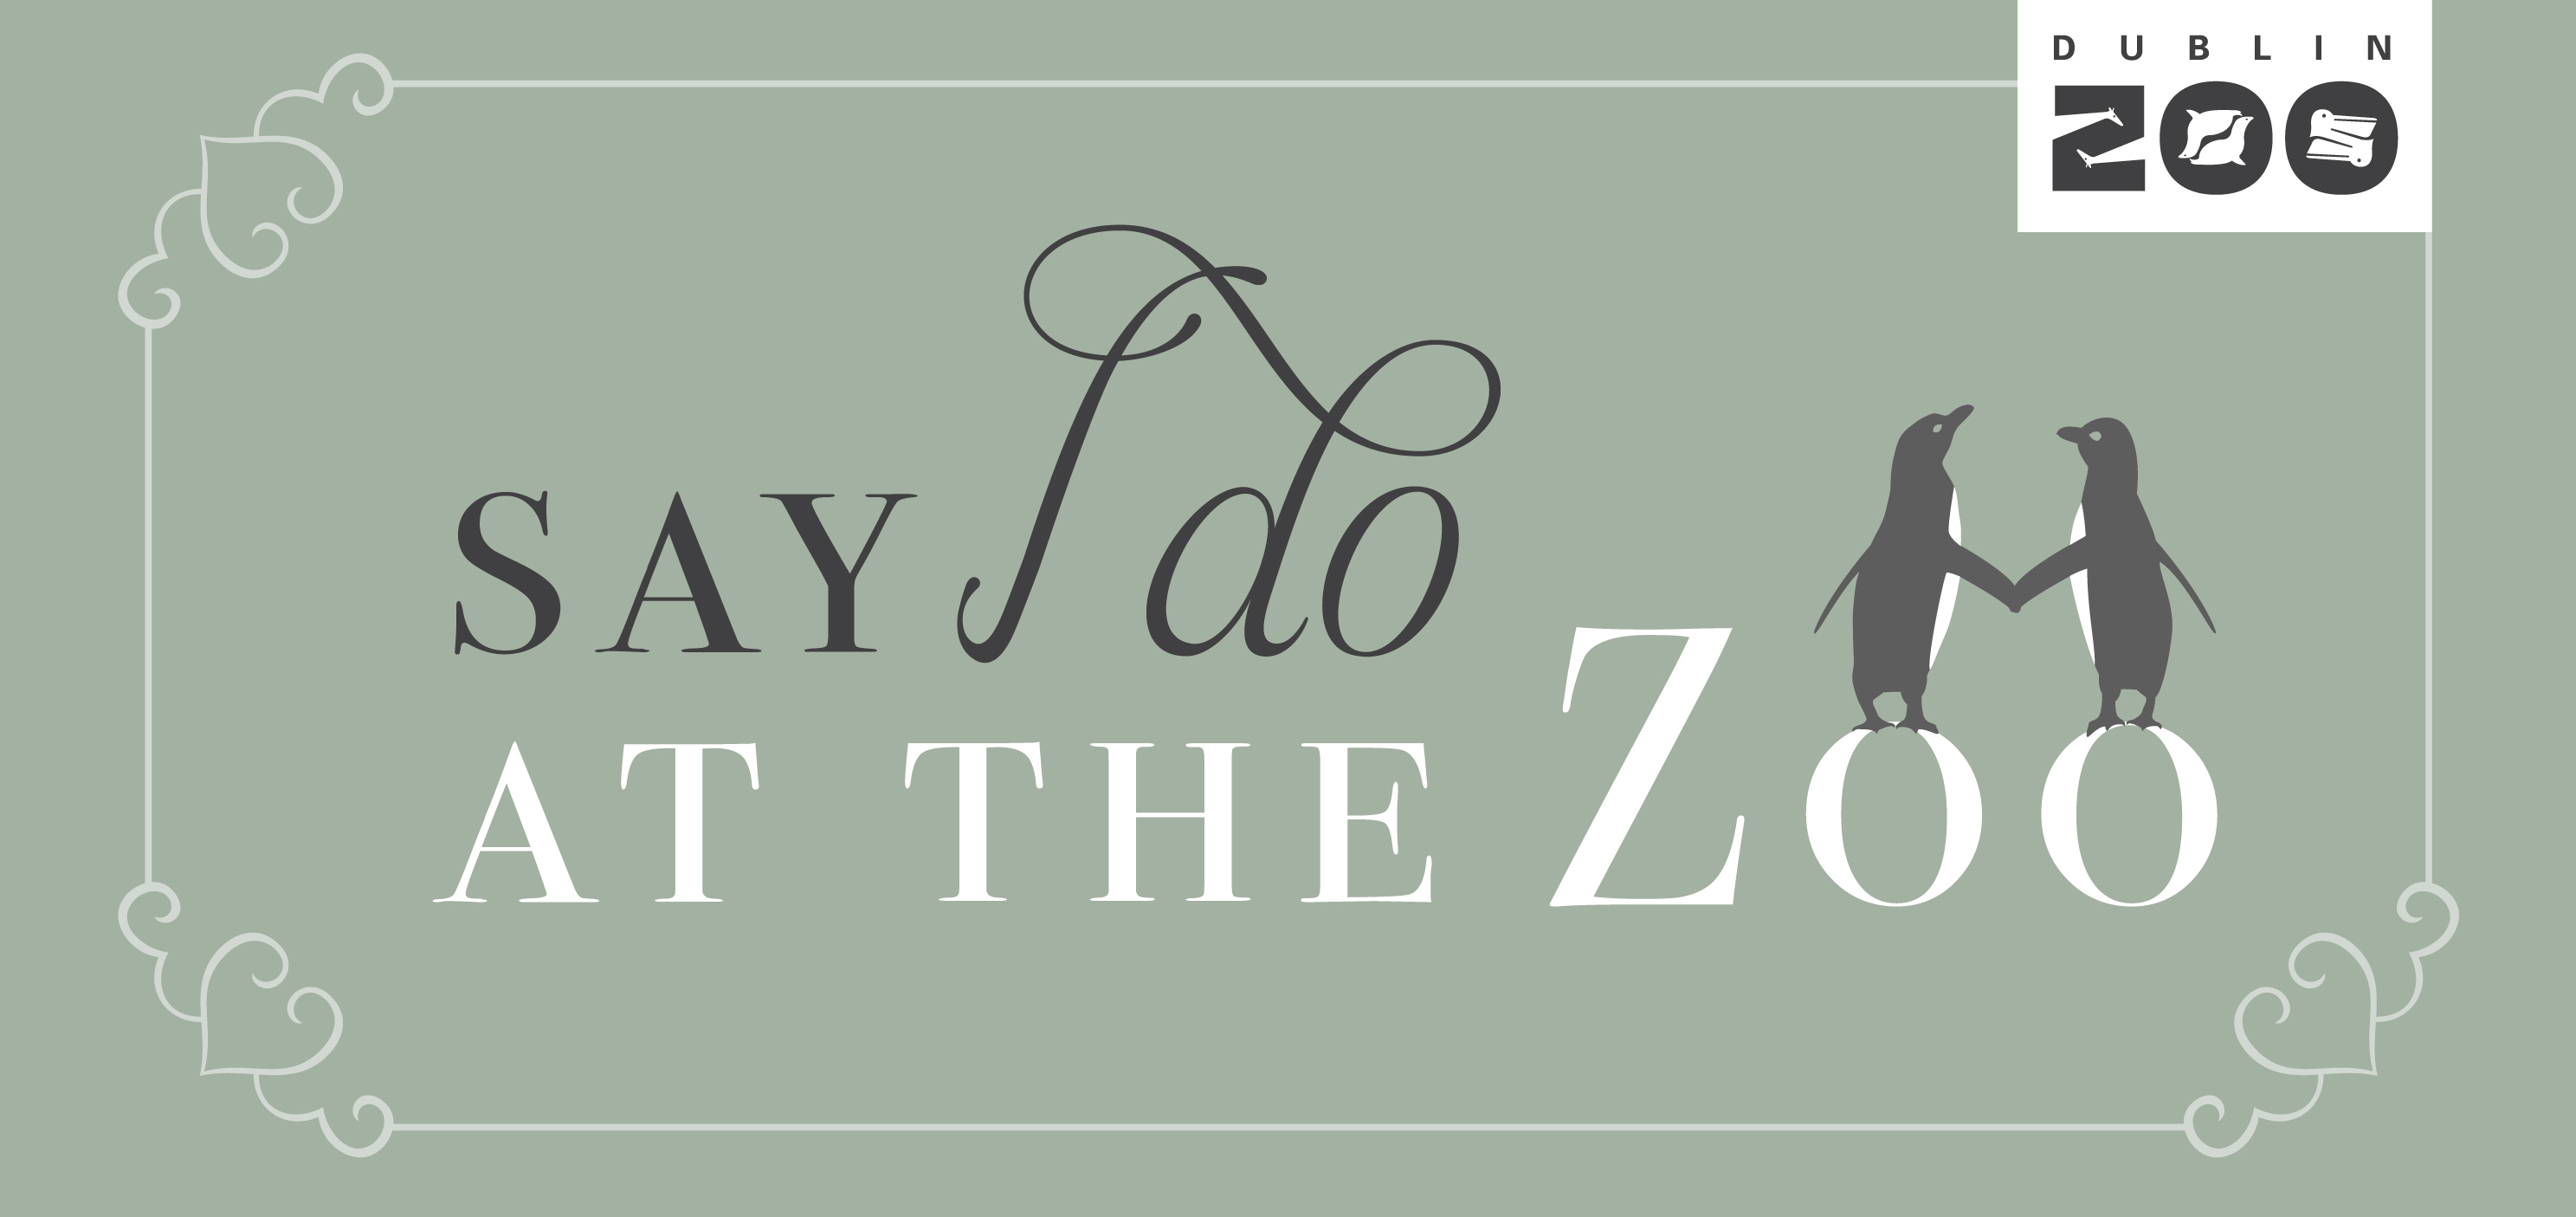 I-do-at-the-Zoo-large